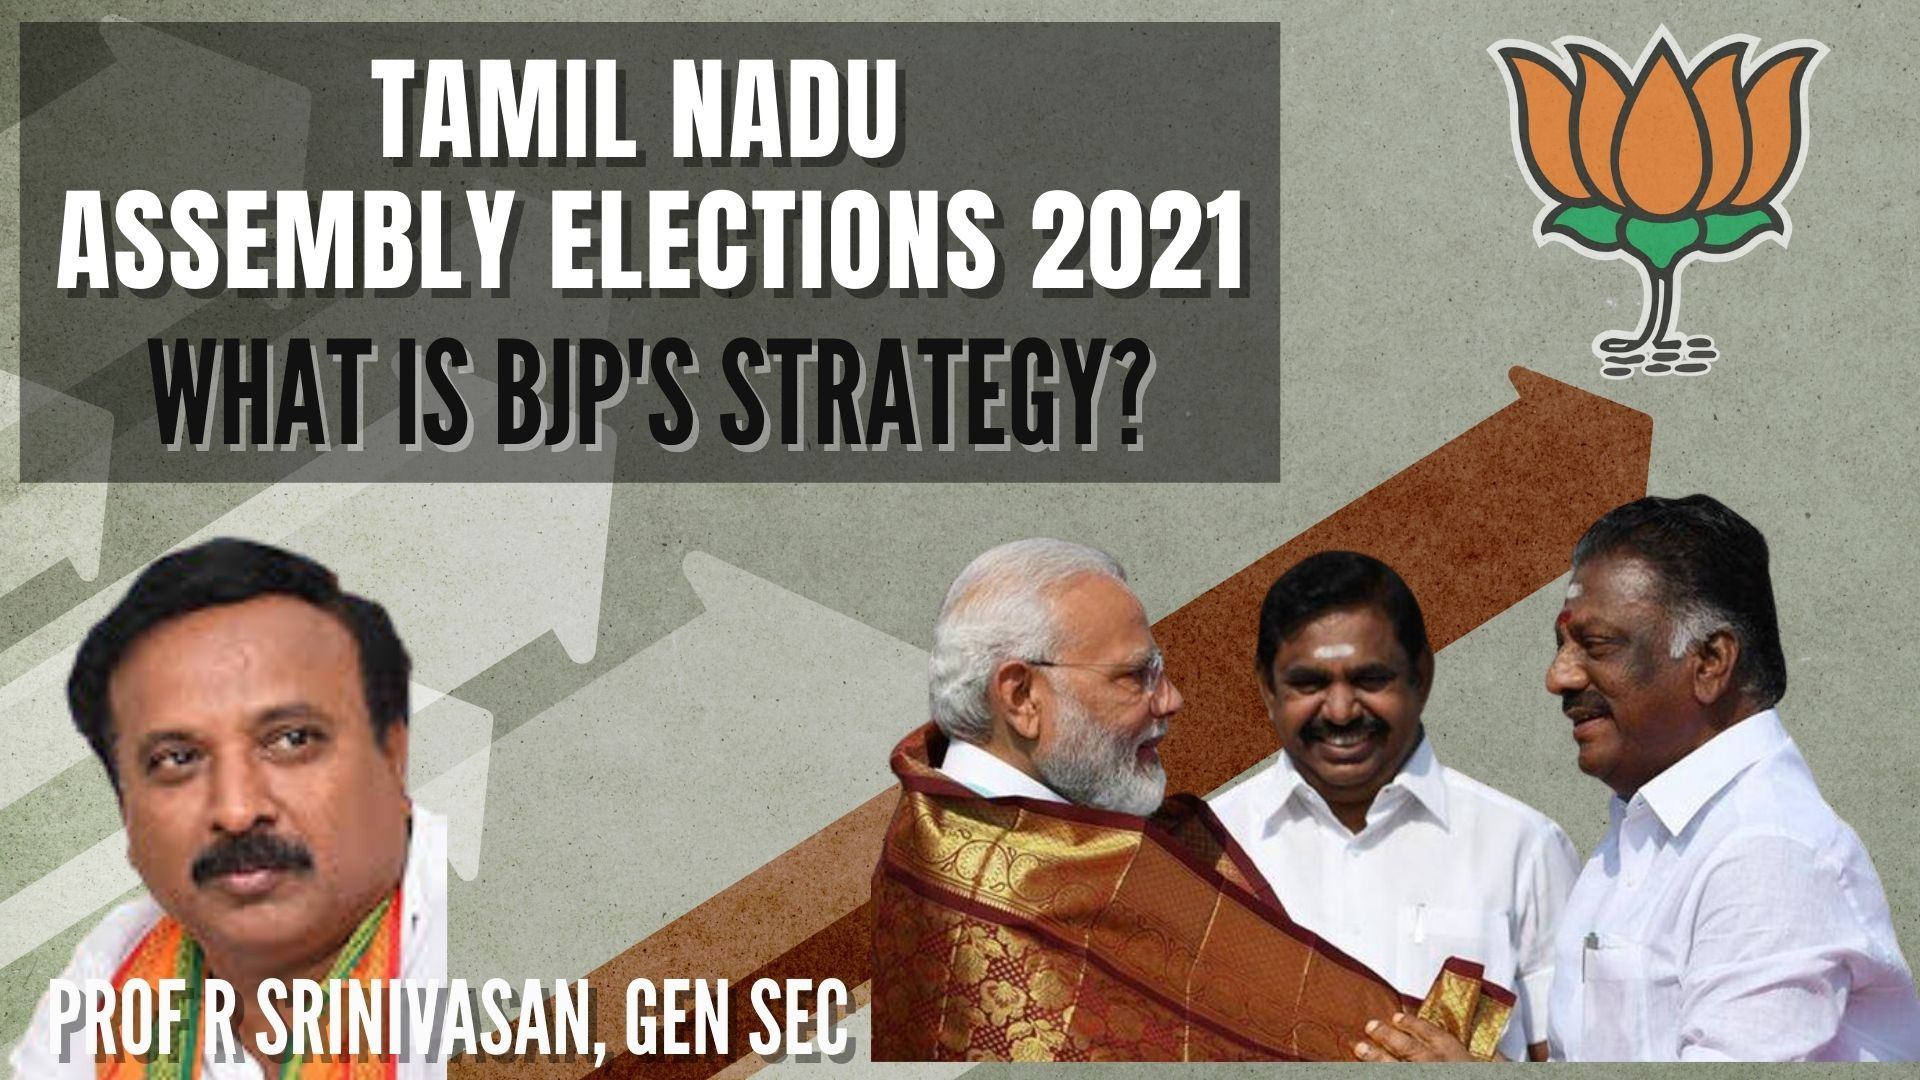 Role of caste in Tamil Nadu elections, Behind the scenes of how did Devendra Kula Velalars (DKV) become united under one name. How hard/easy was this? When did it start? What is BJP's overall strategy for TN? Why BJP won't demand more seat sharing. All this and more!